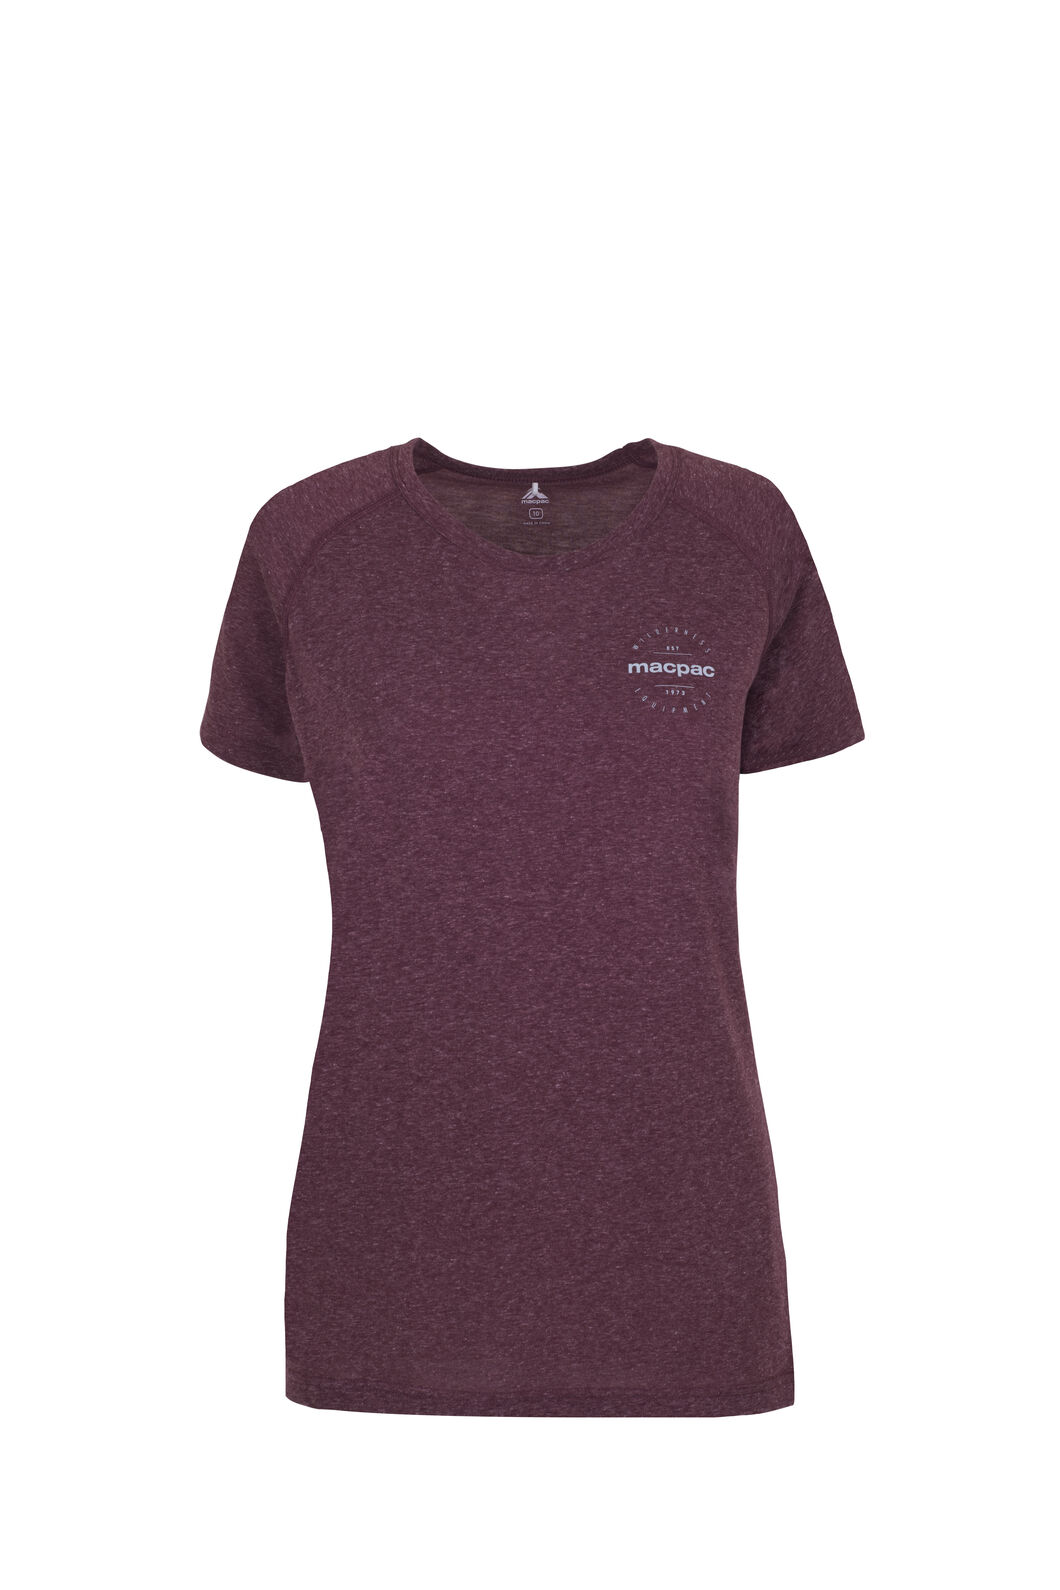 Macpac Polycotton Tee - Women's, Windsor Wine, hi-res